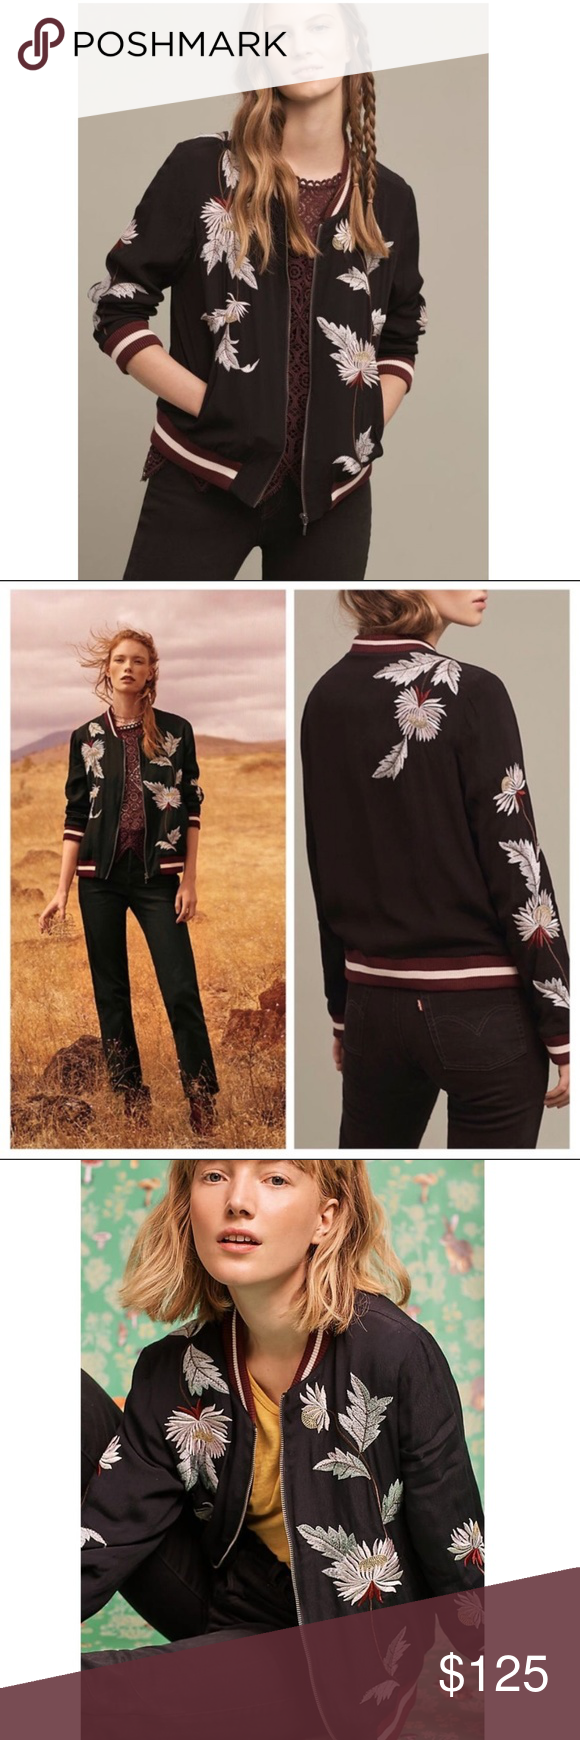 b19ebd3d4 Anthropologie EMBROIDERED SOLSTICE BOMBER new Style No ...